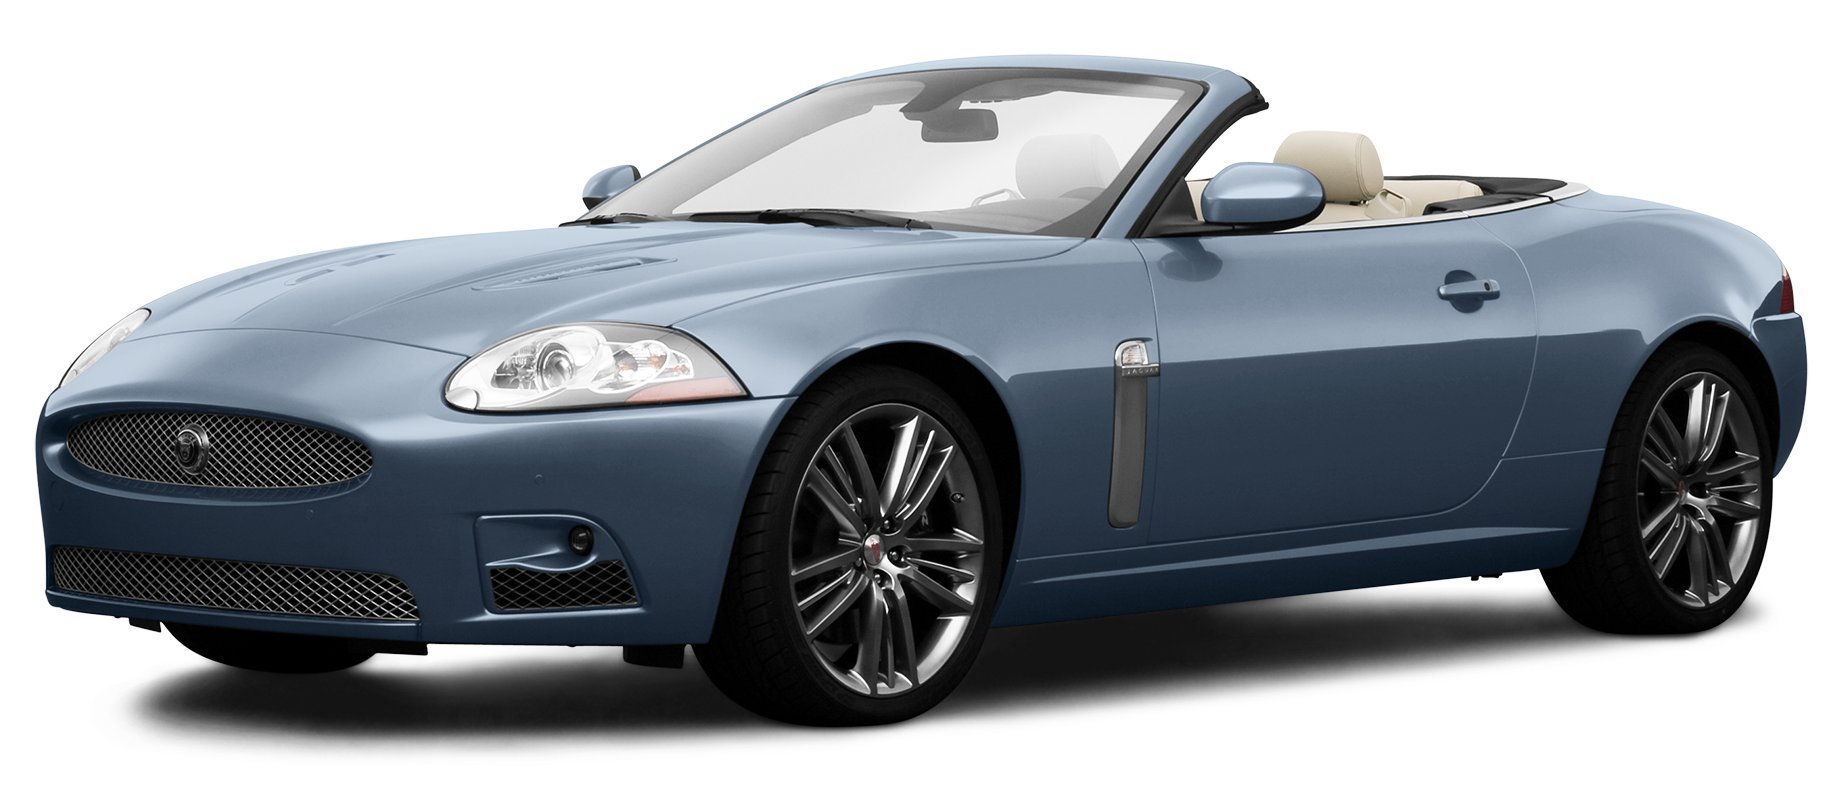 2009 Jaguar XKR, 2 Door Convertible ...